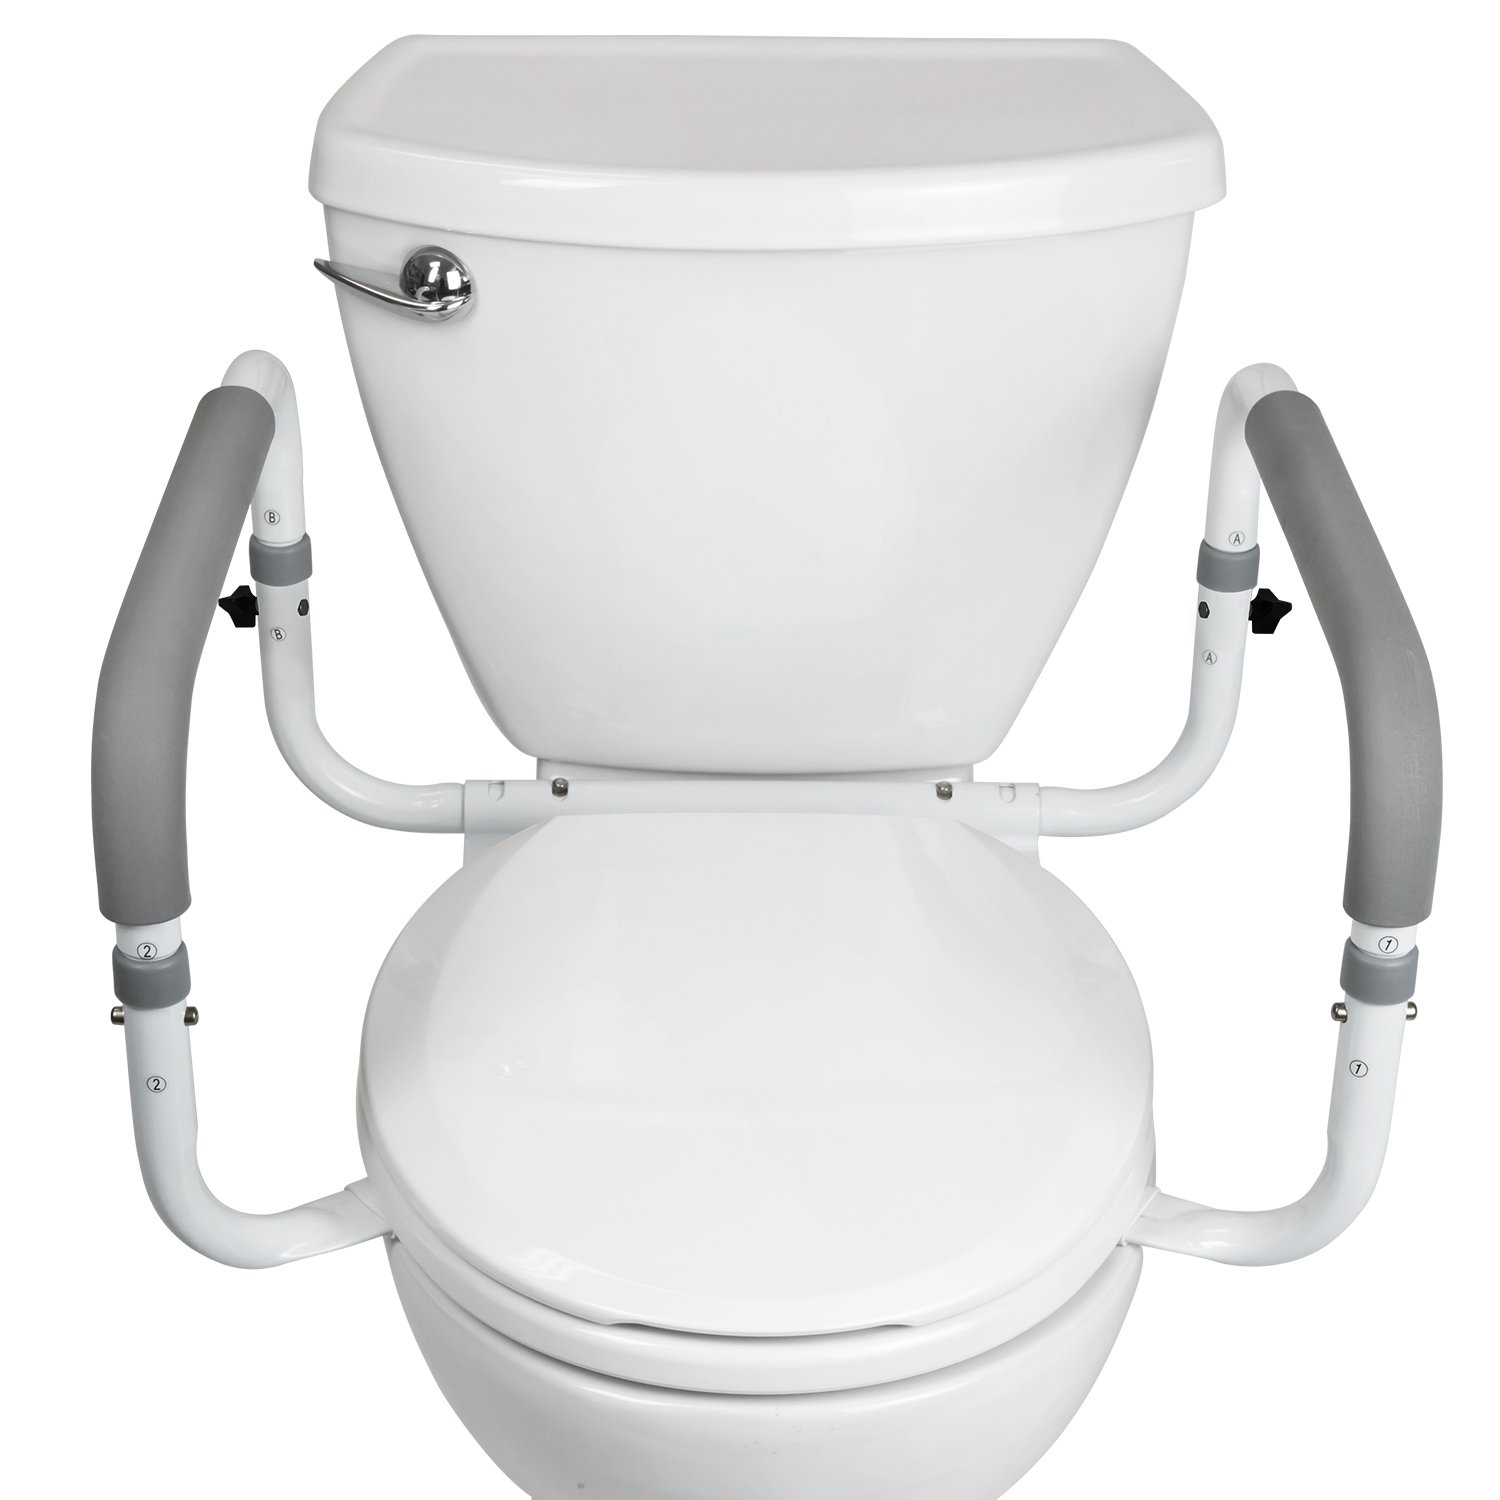 Amazon.com: Toilet Safety Frame by Vive - Adjustable, Compact ...